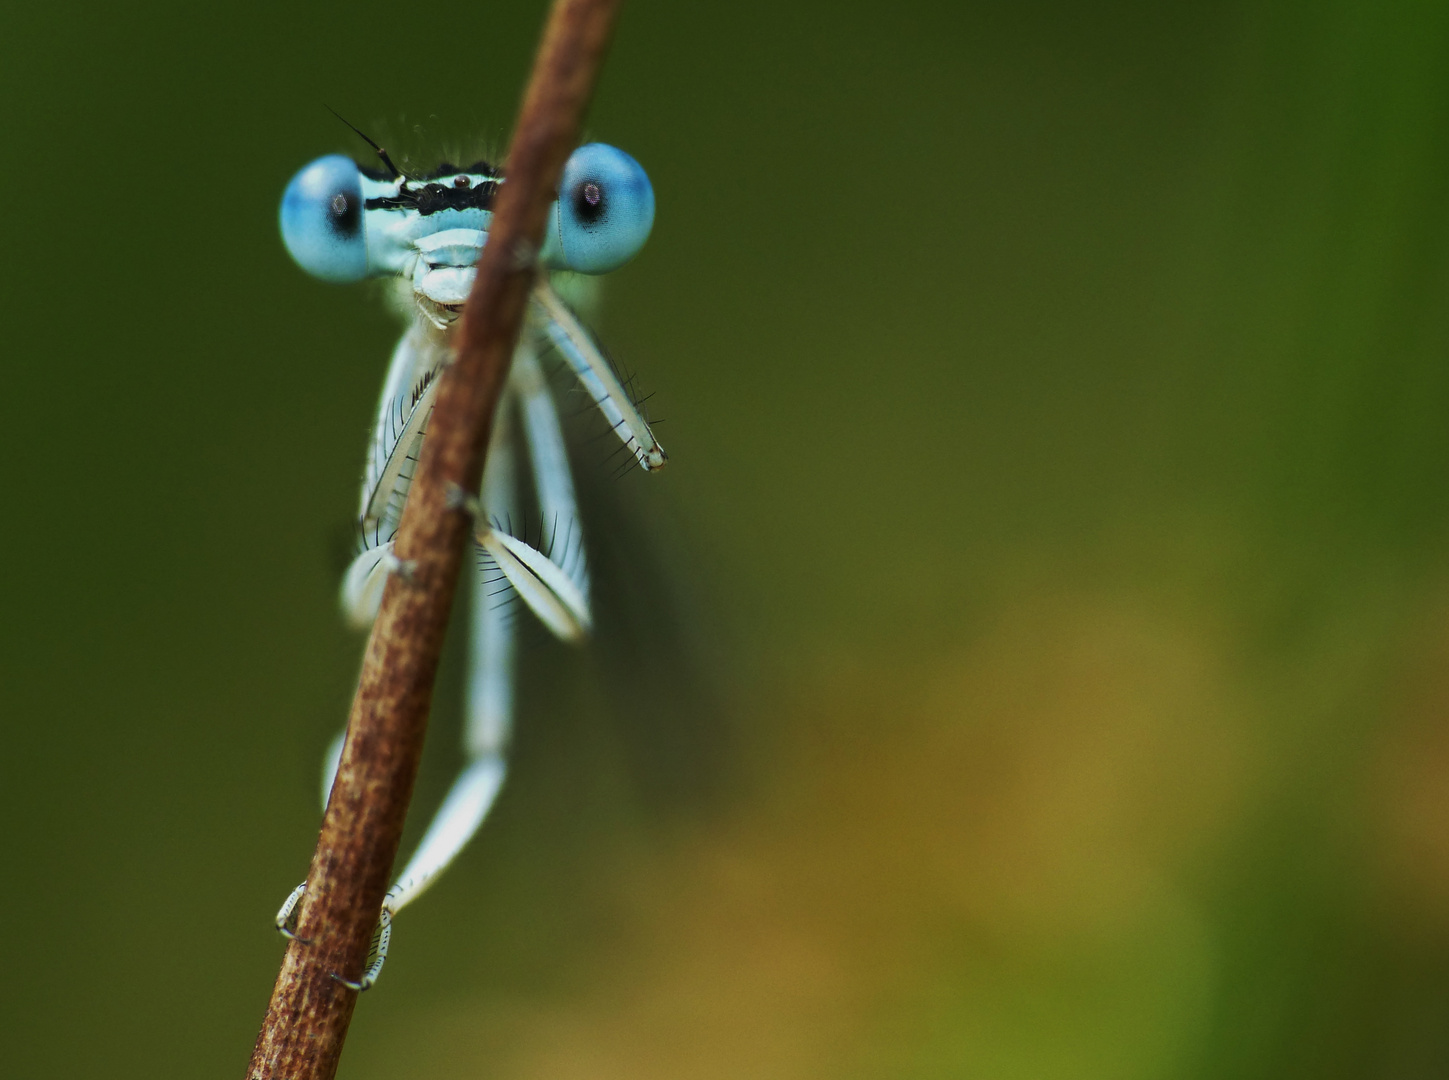 ...is watching you